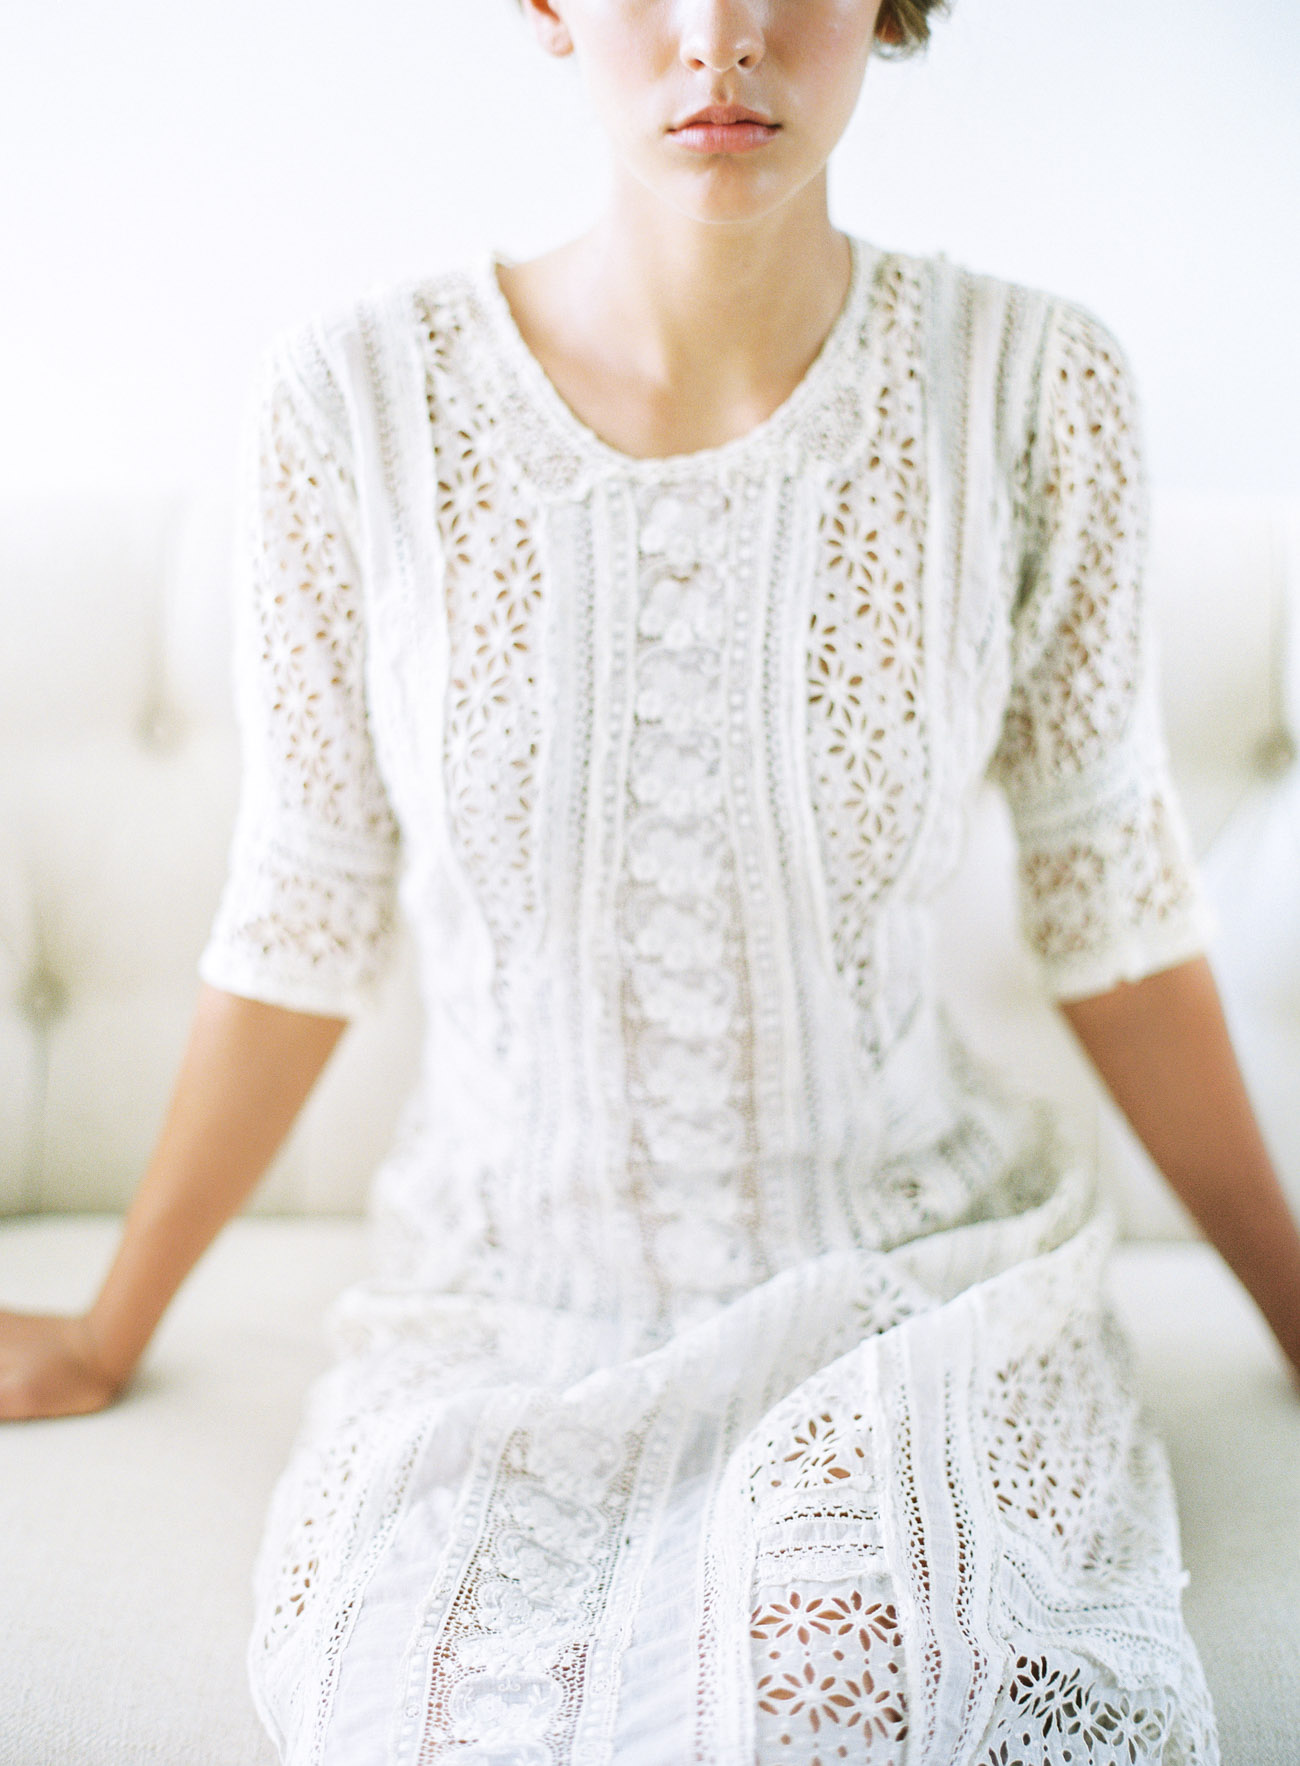 Old World European Lace Bridal Inspiration